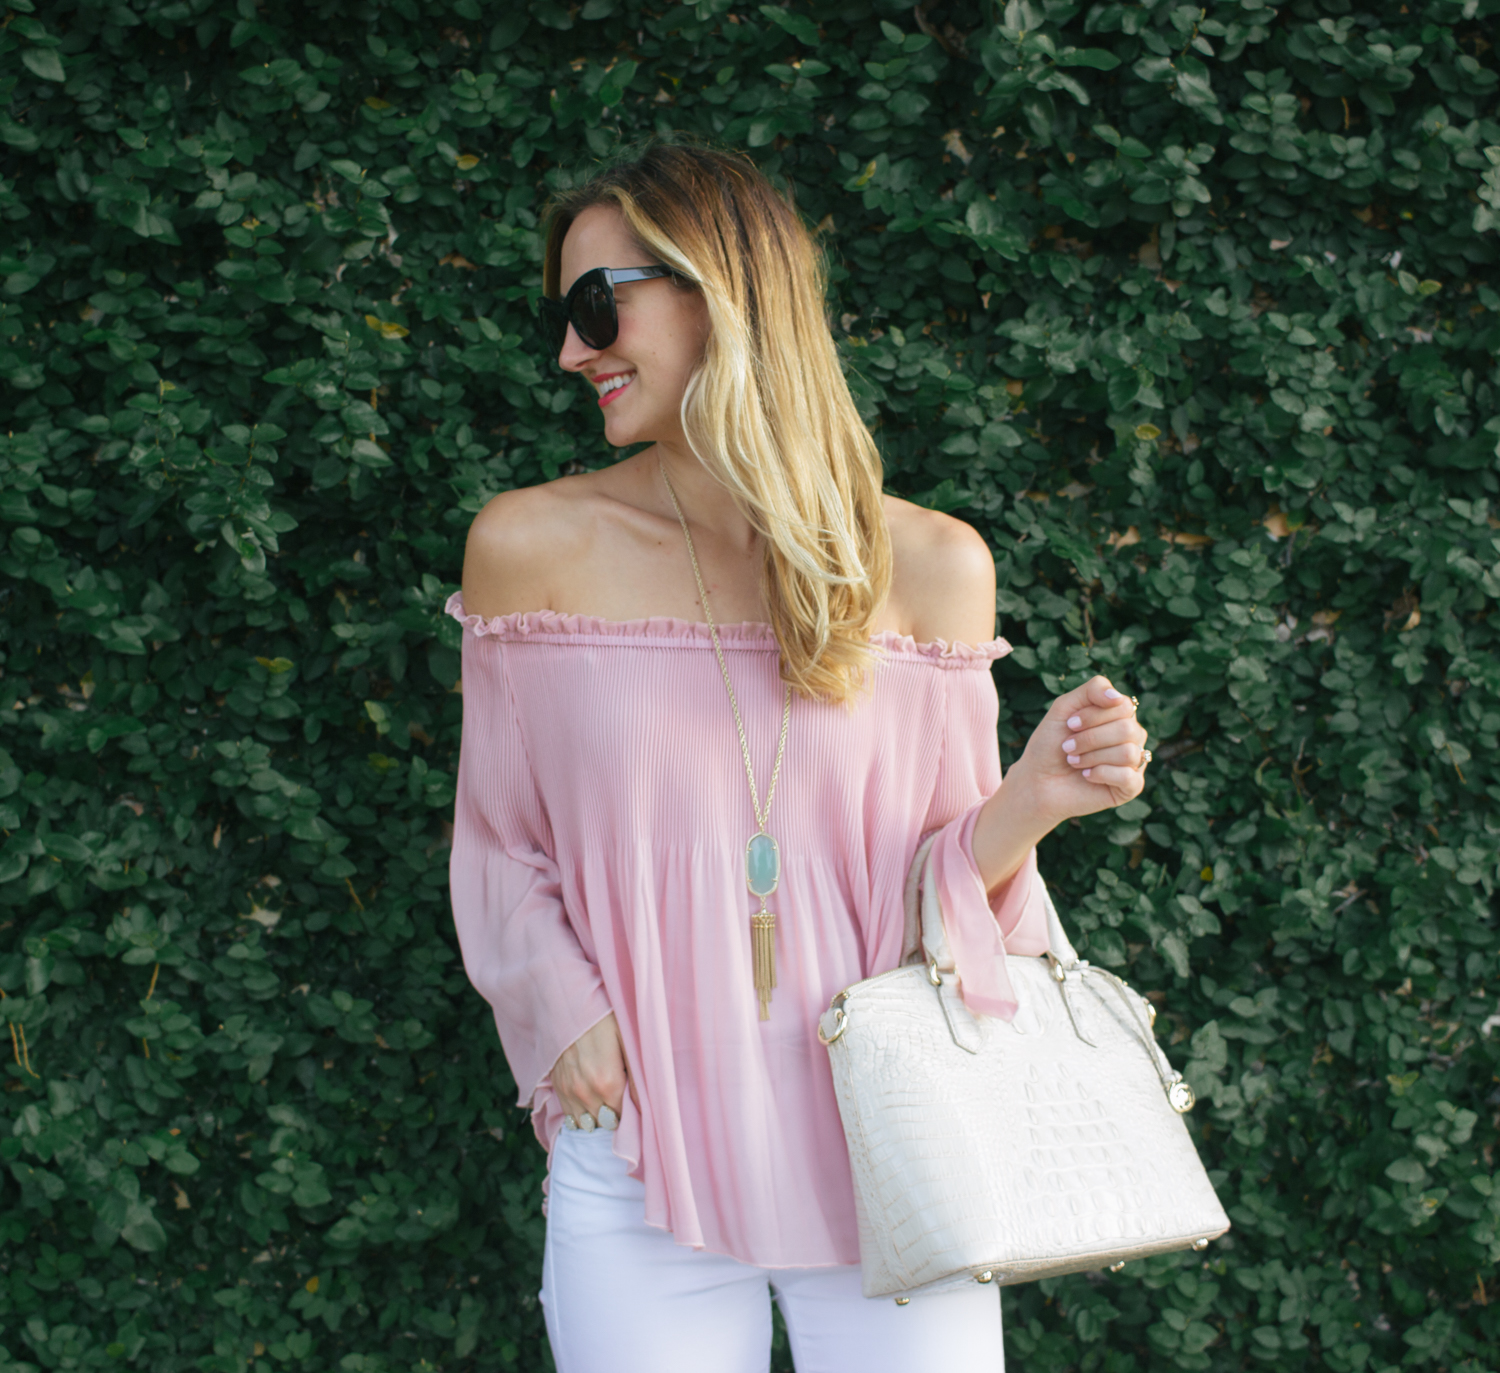 livvyland-blog-olivia-watson-austin-texas-fashion-blogger-blush-pink-off-shoulder-top-topshop-white-skinny-jeans-date-night-outfit-summer-7